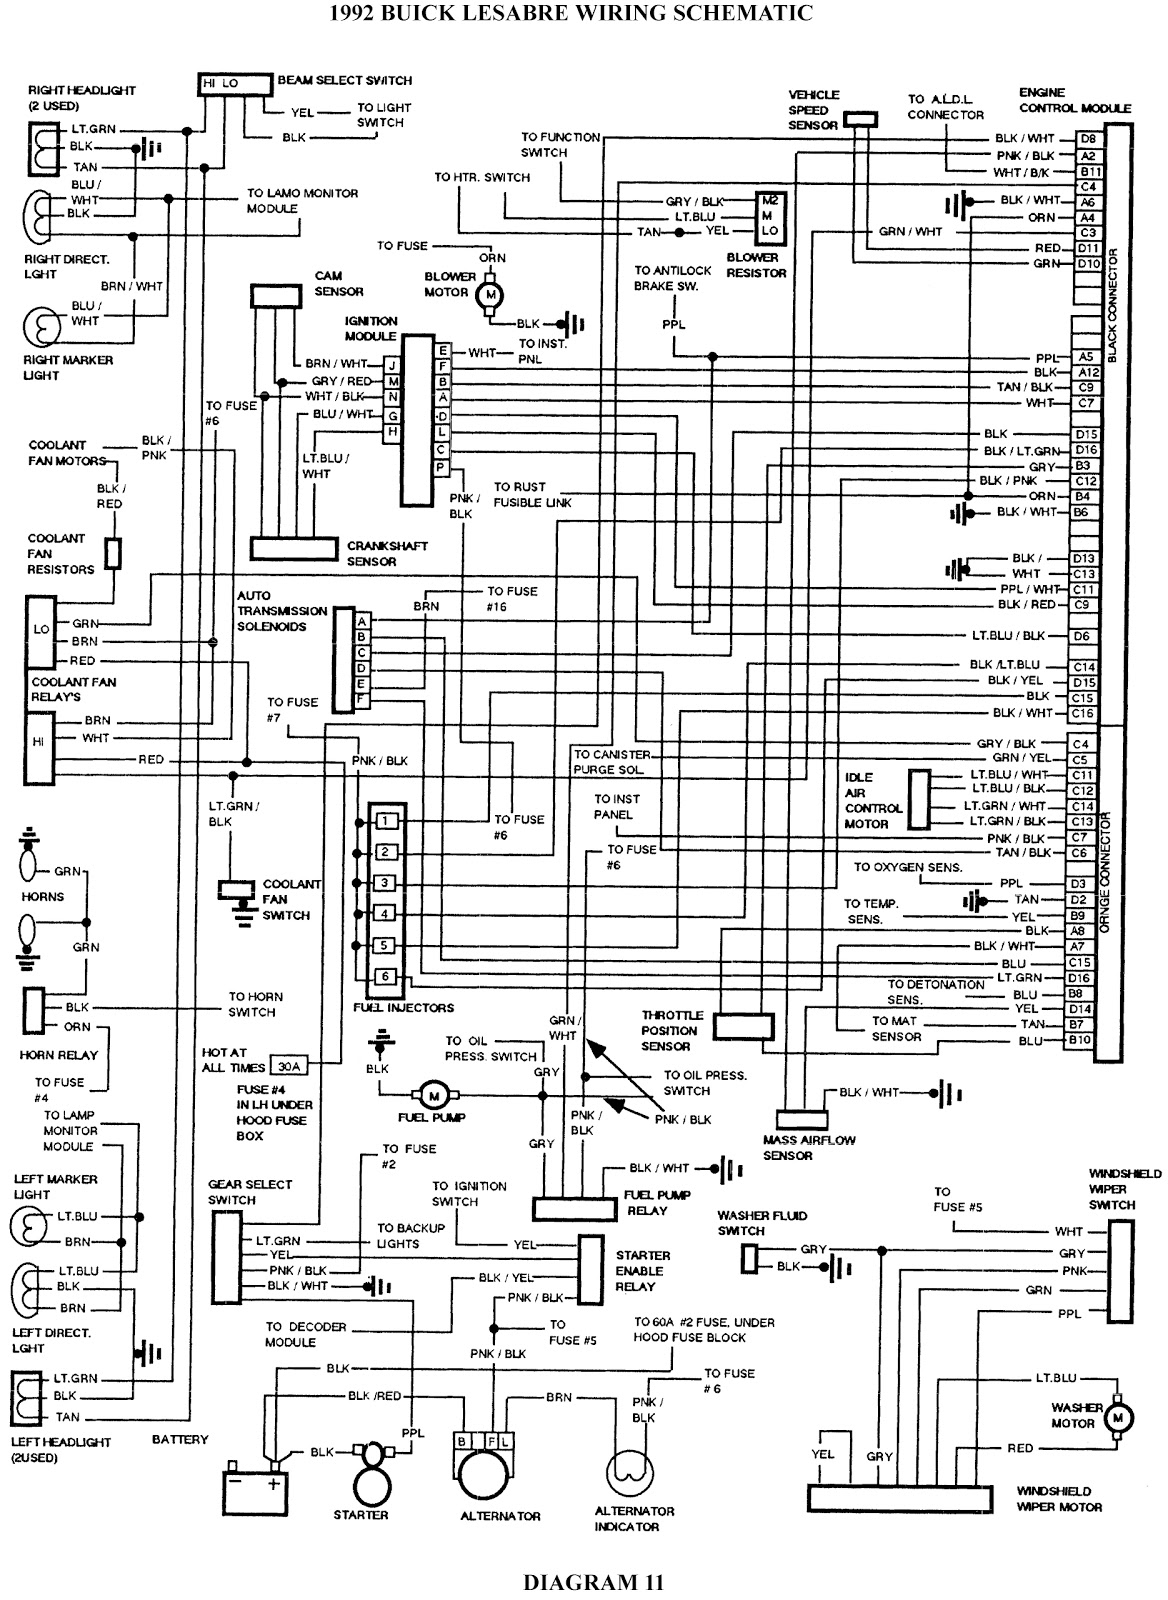 1996 buick wiring diagram wiring diagram basic wiring diagram for 1996 buick park avenue [ 1168 x 1600 Pixel ]